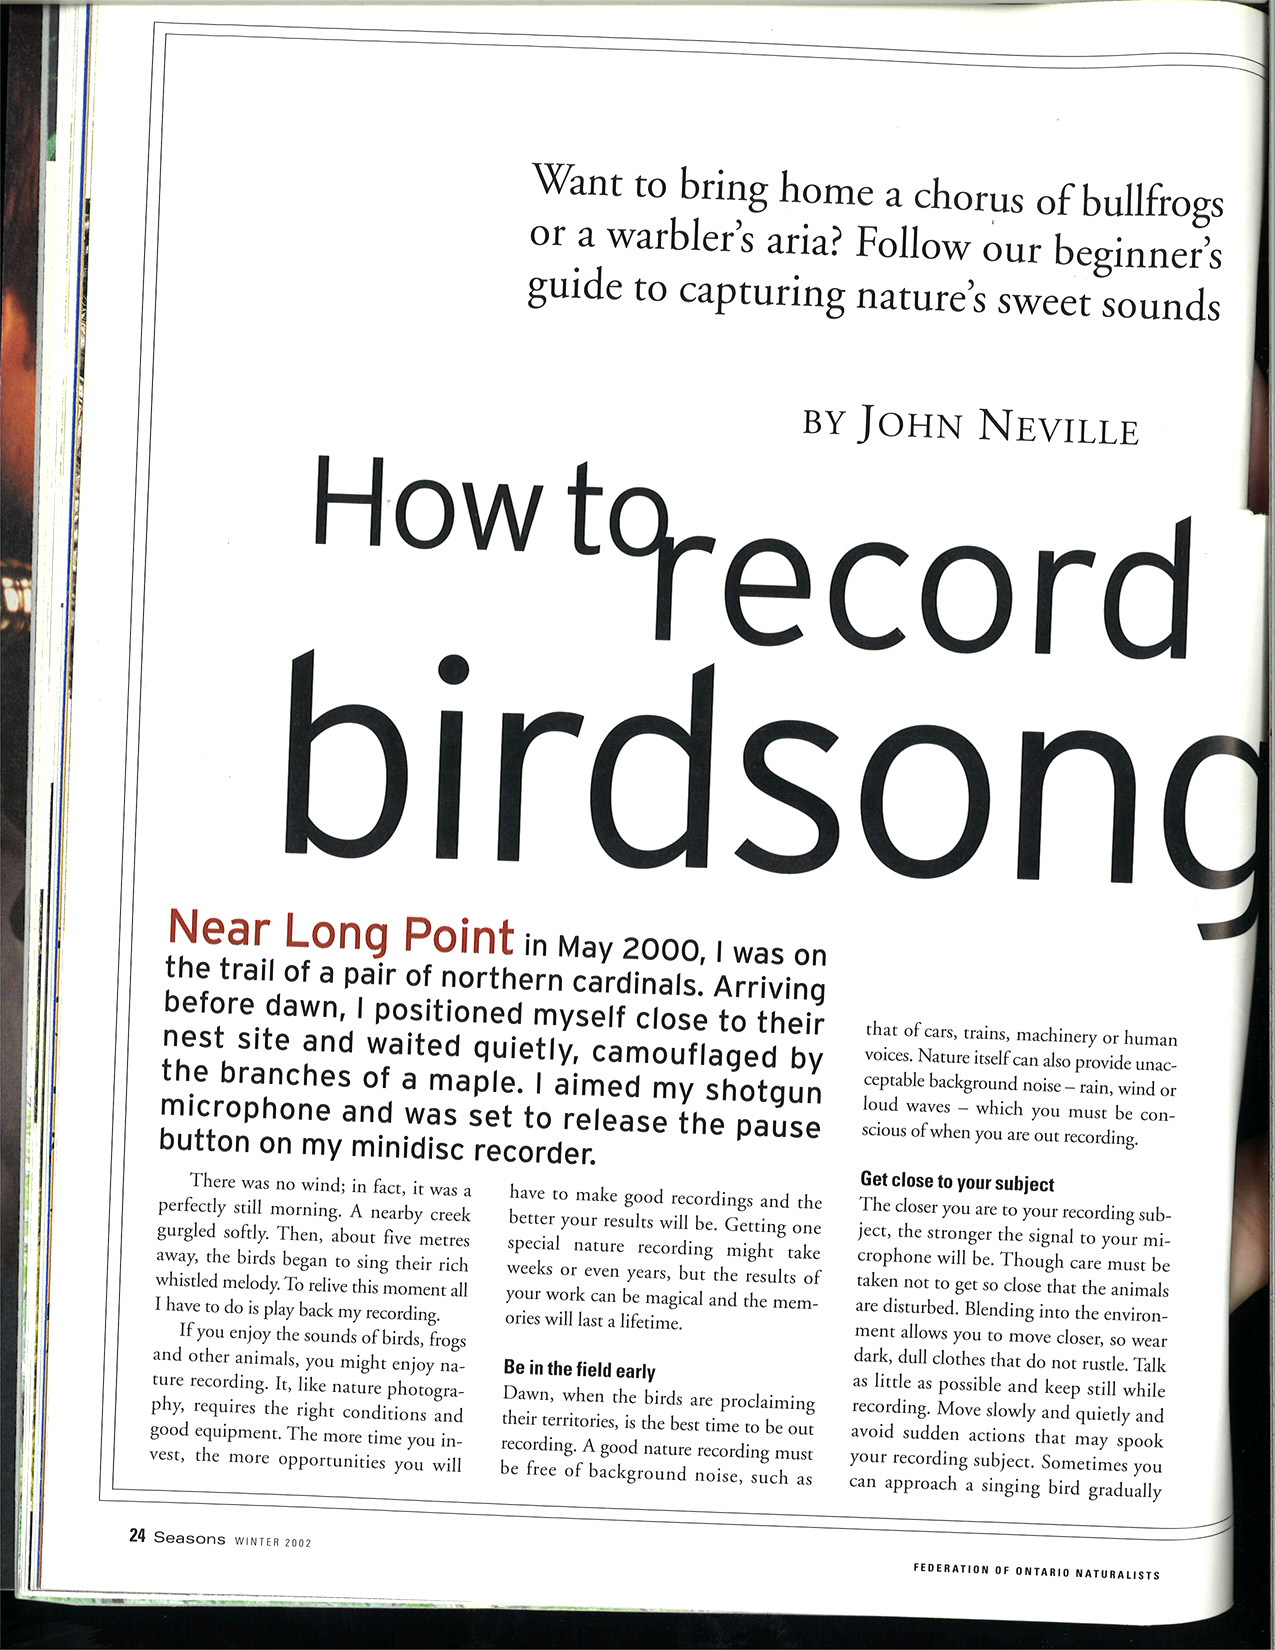 How to record birdsong